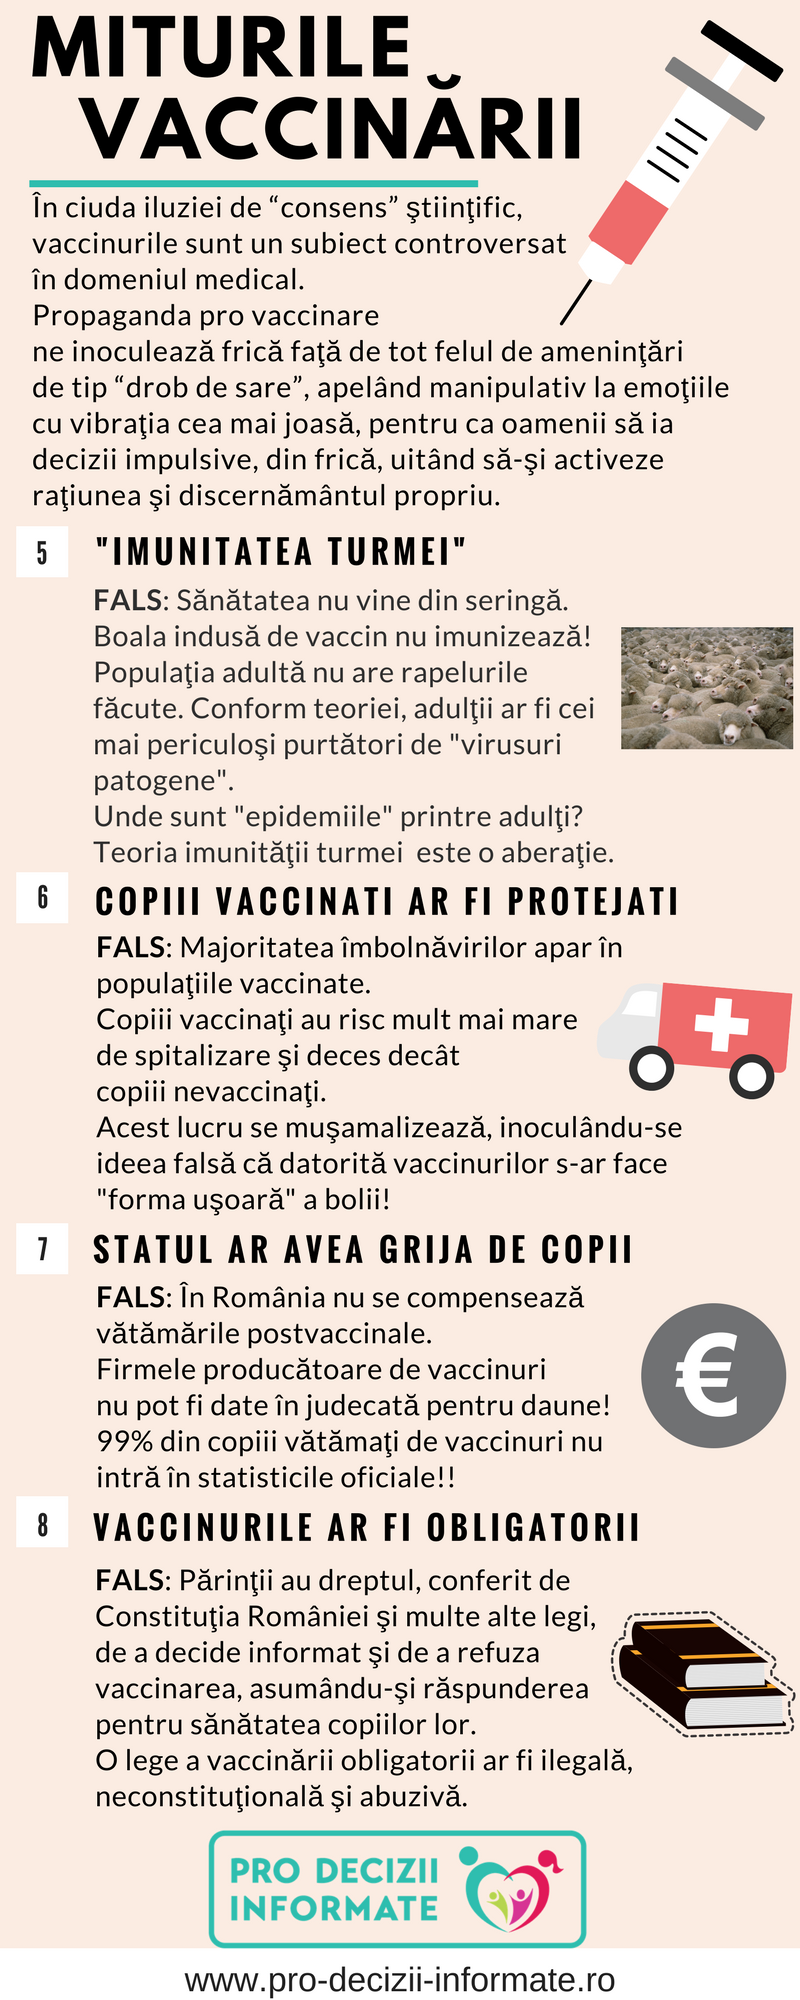 Miturile vaccinarii-verso-final